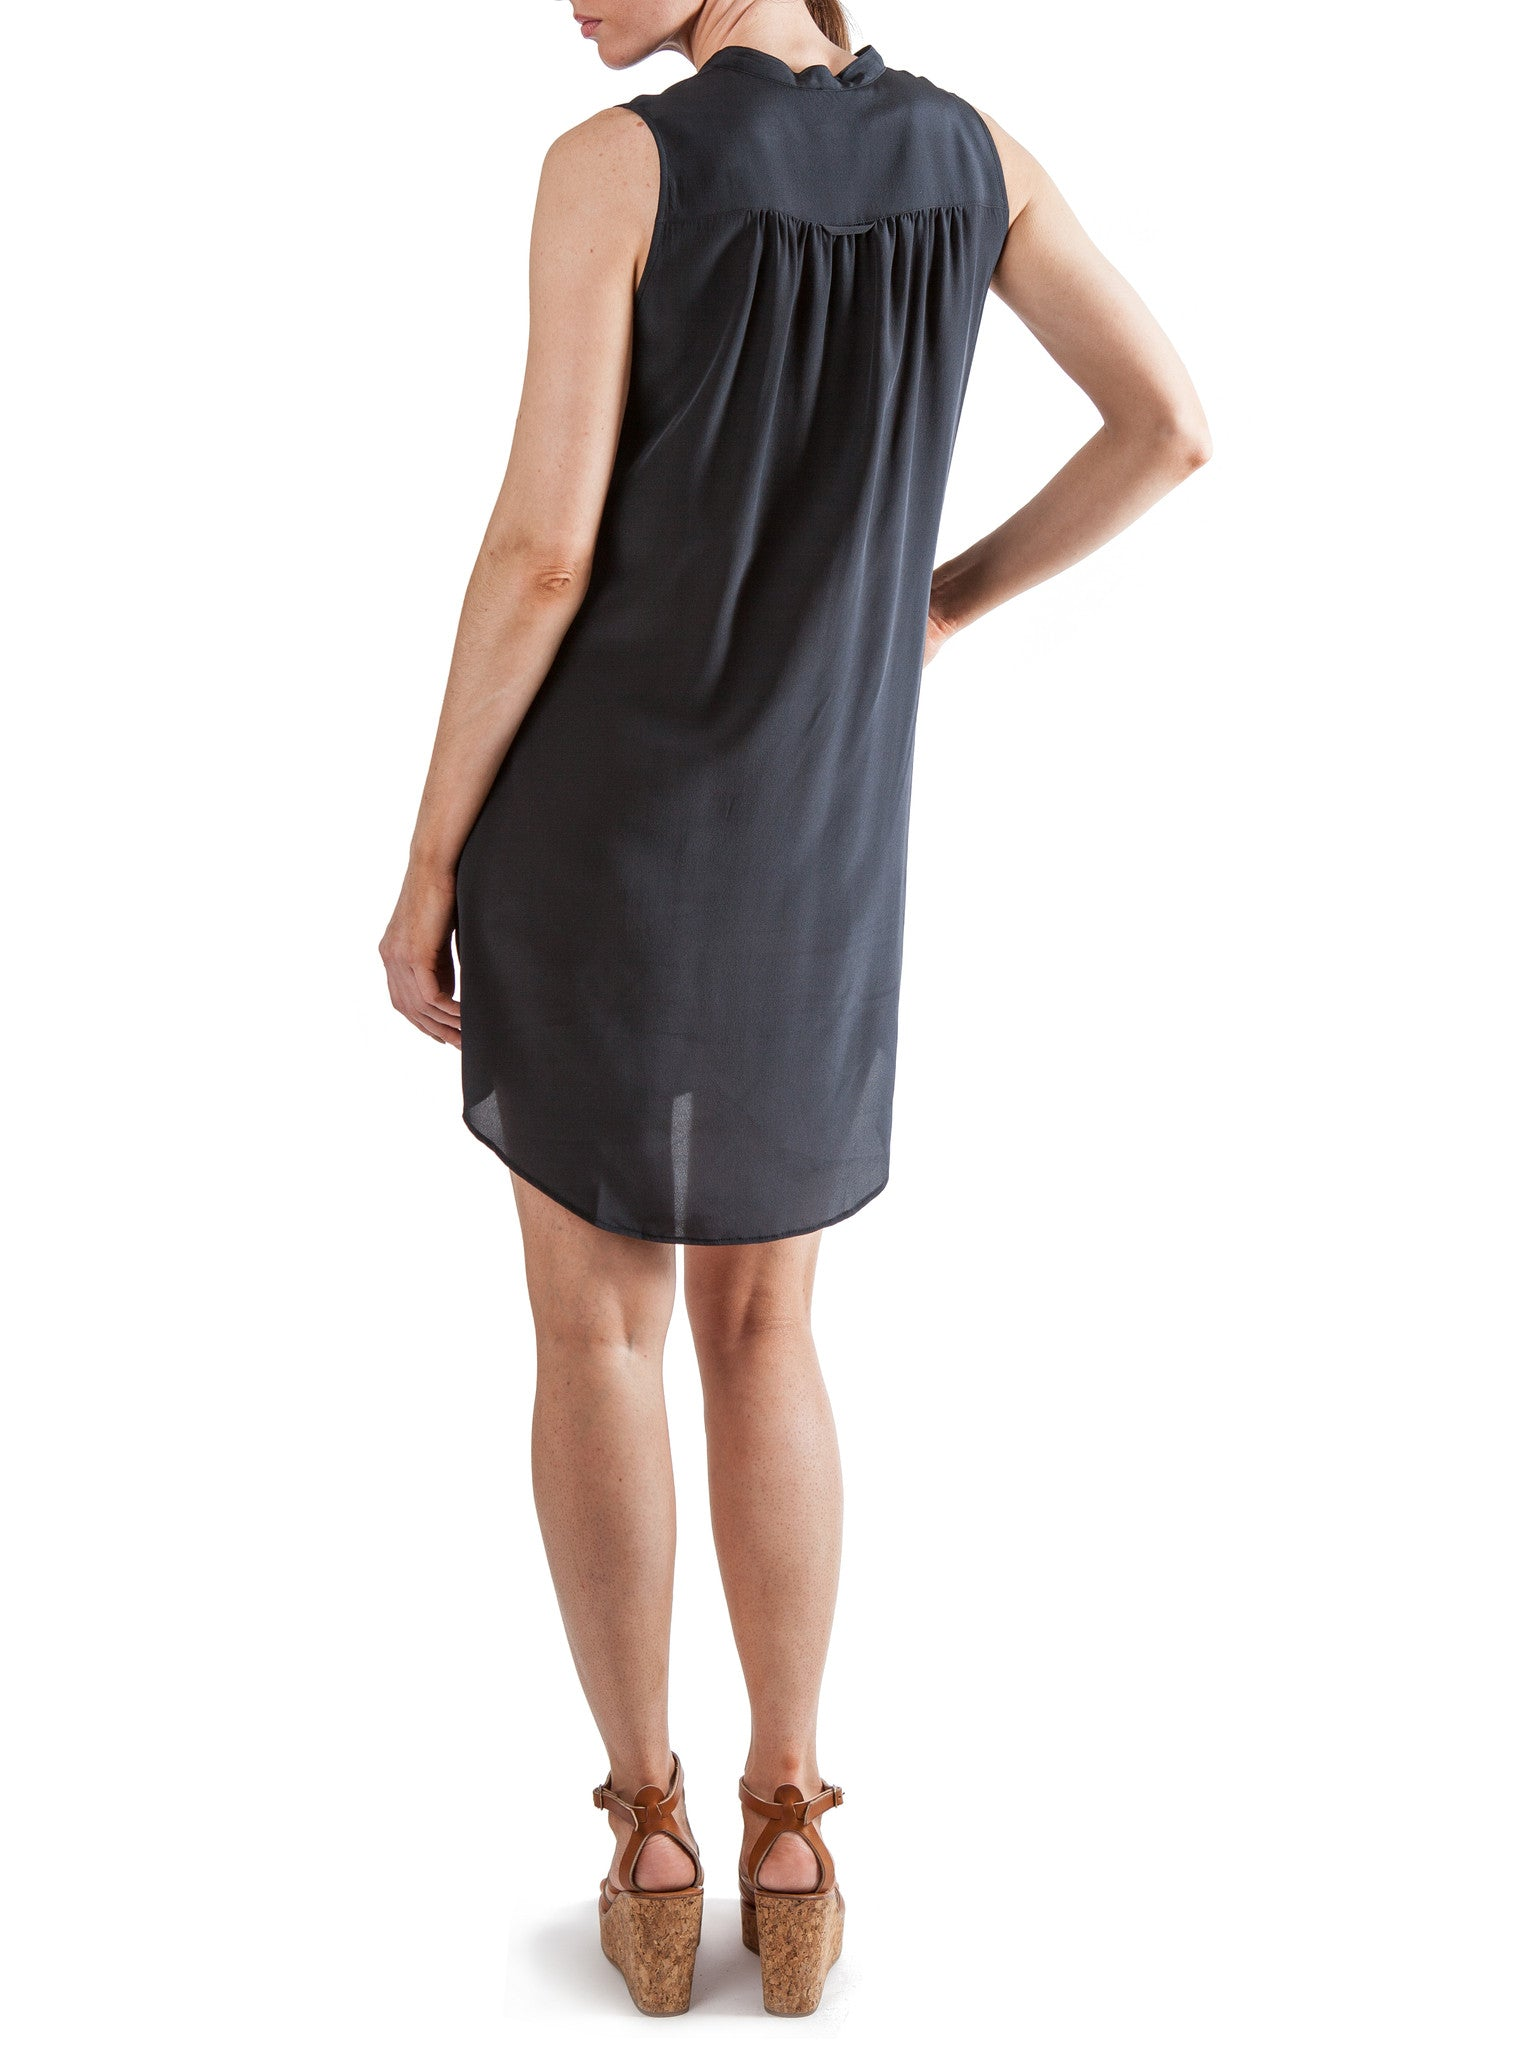 Black sleeveless short dress | Silk Crepe de Chine